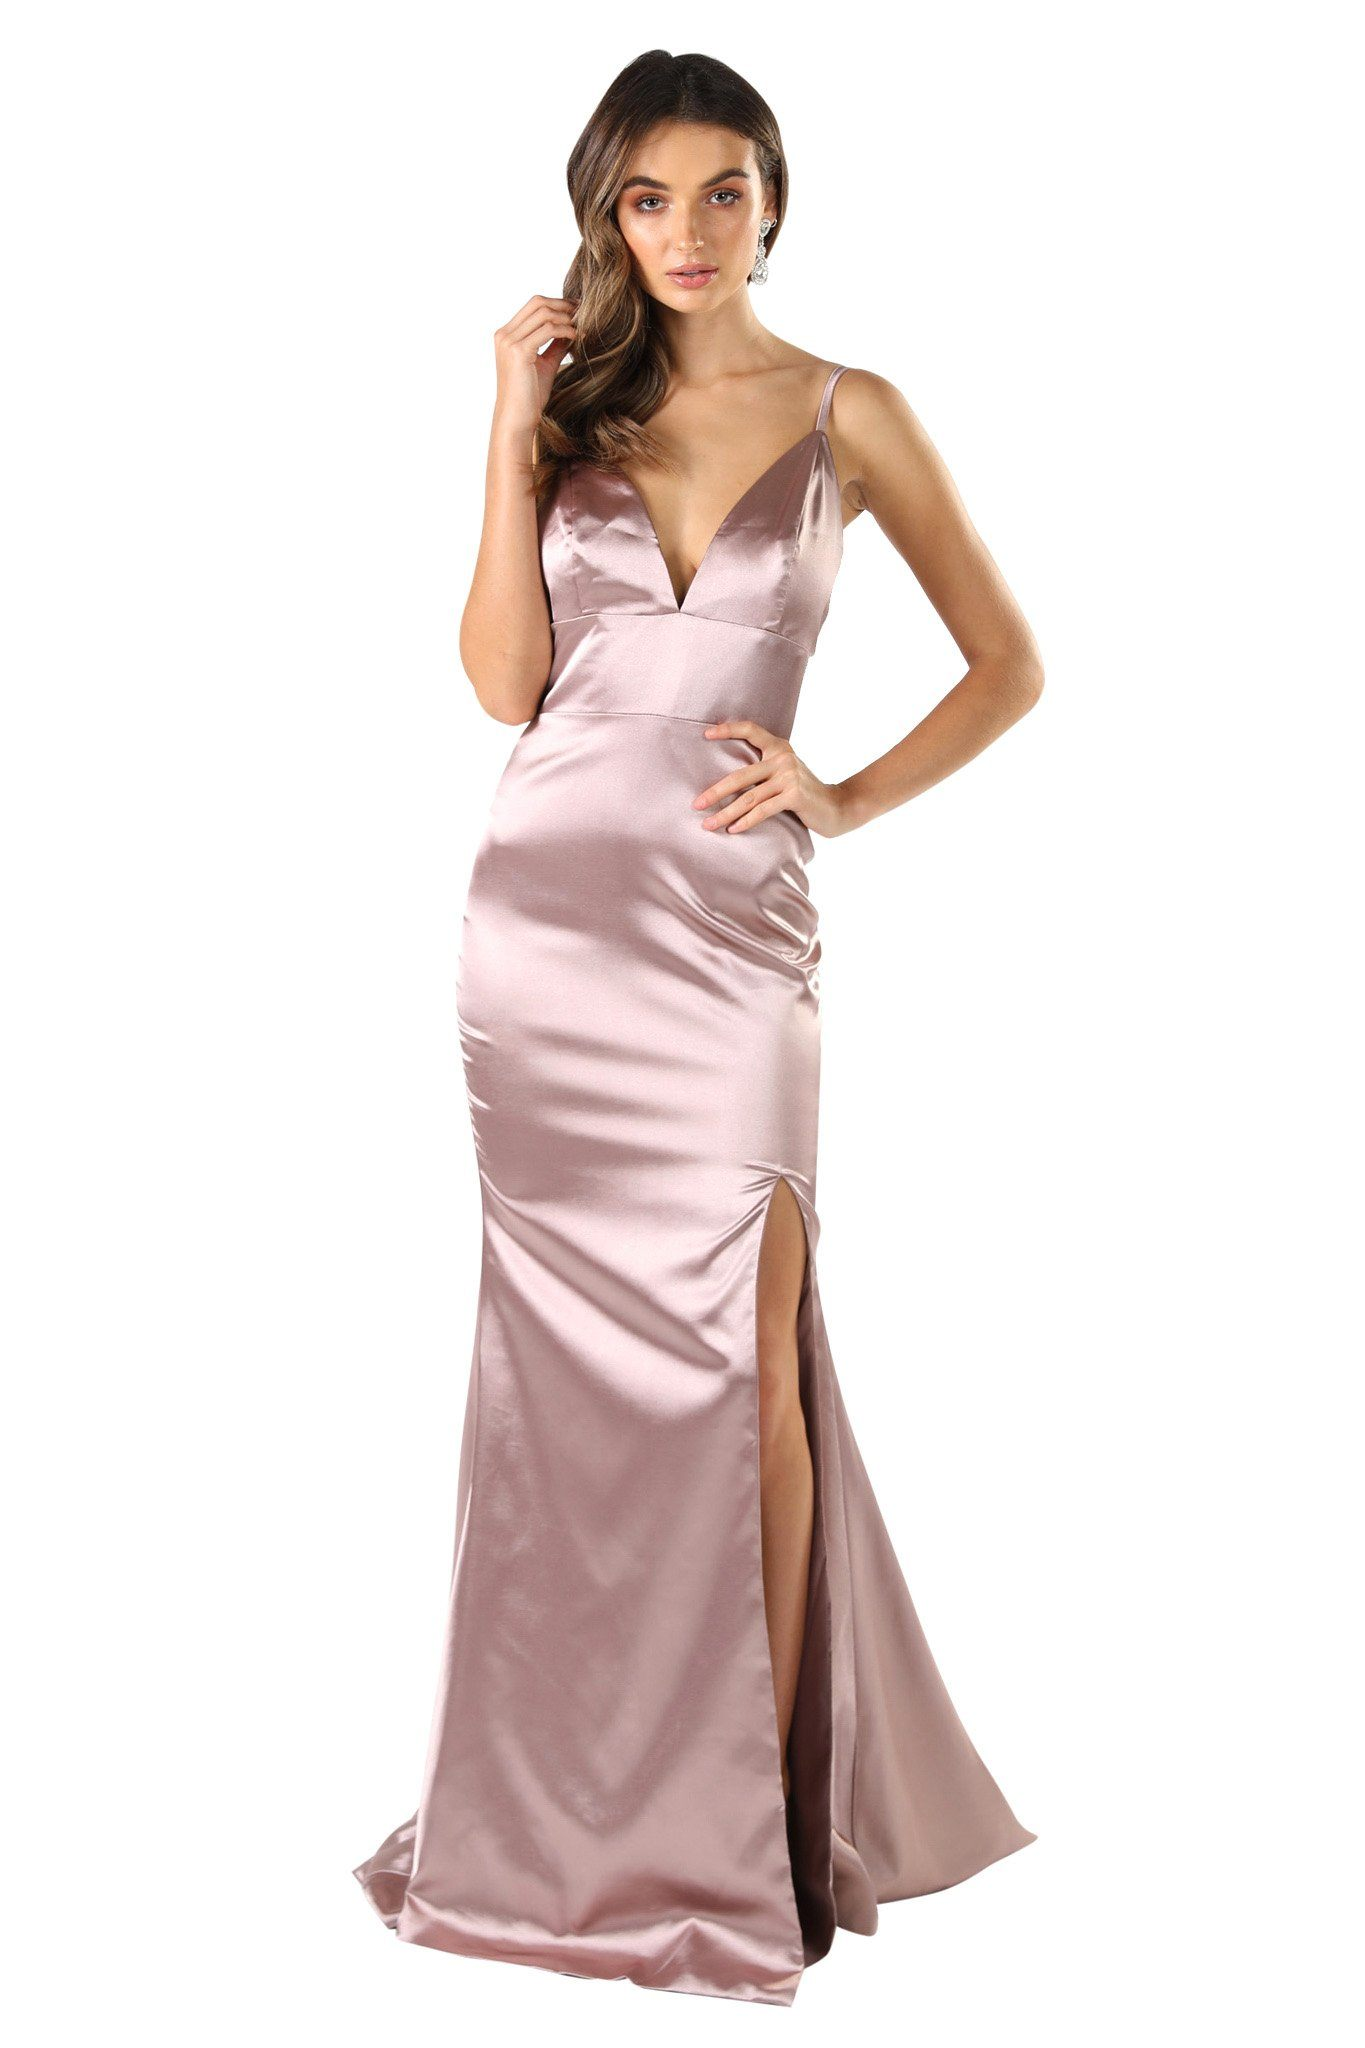 Champagne sleeveless satin formal long gown with thin shoulder straps, front thigh high slit, open back design and a long train